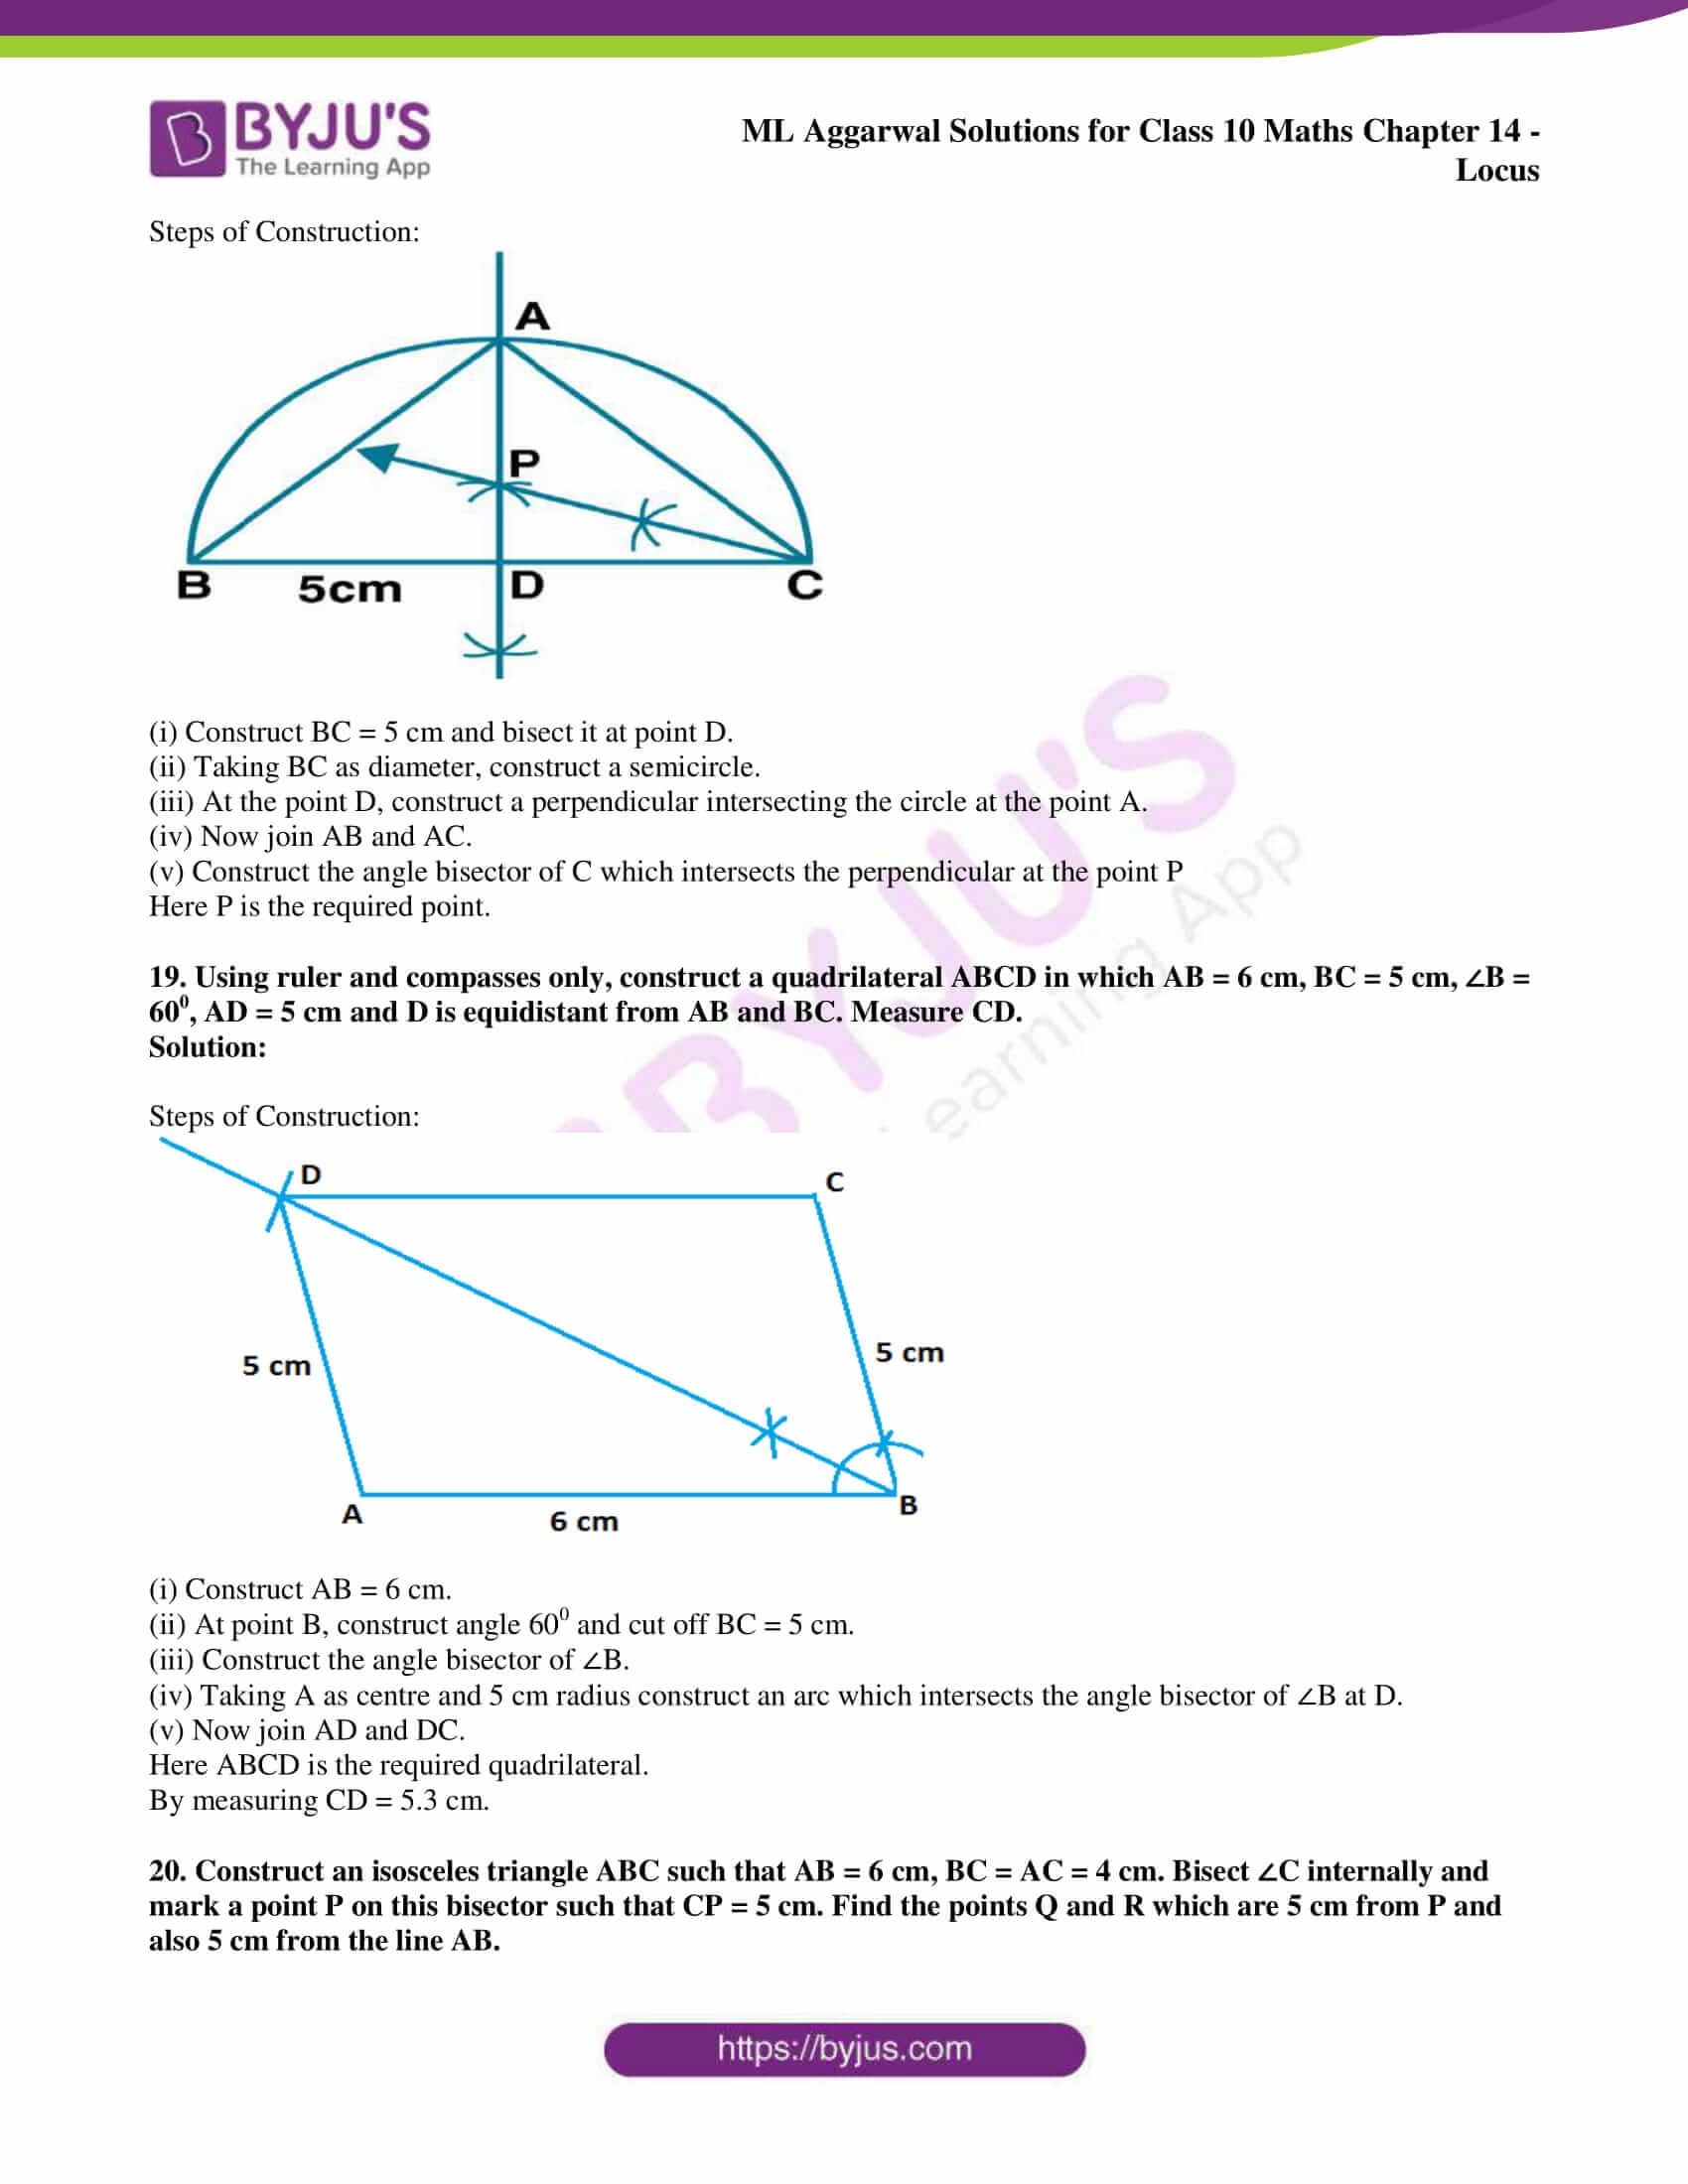 ml aggarwal solutions for class 10 maths chapter 14 16